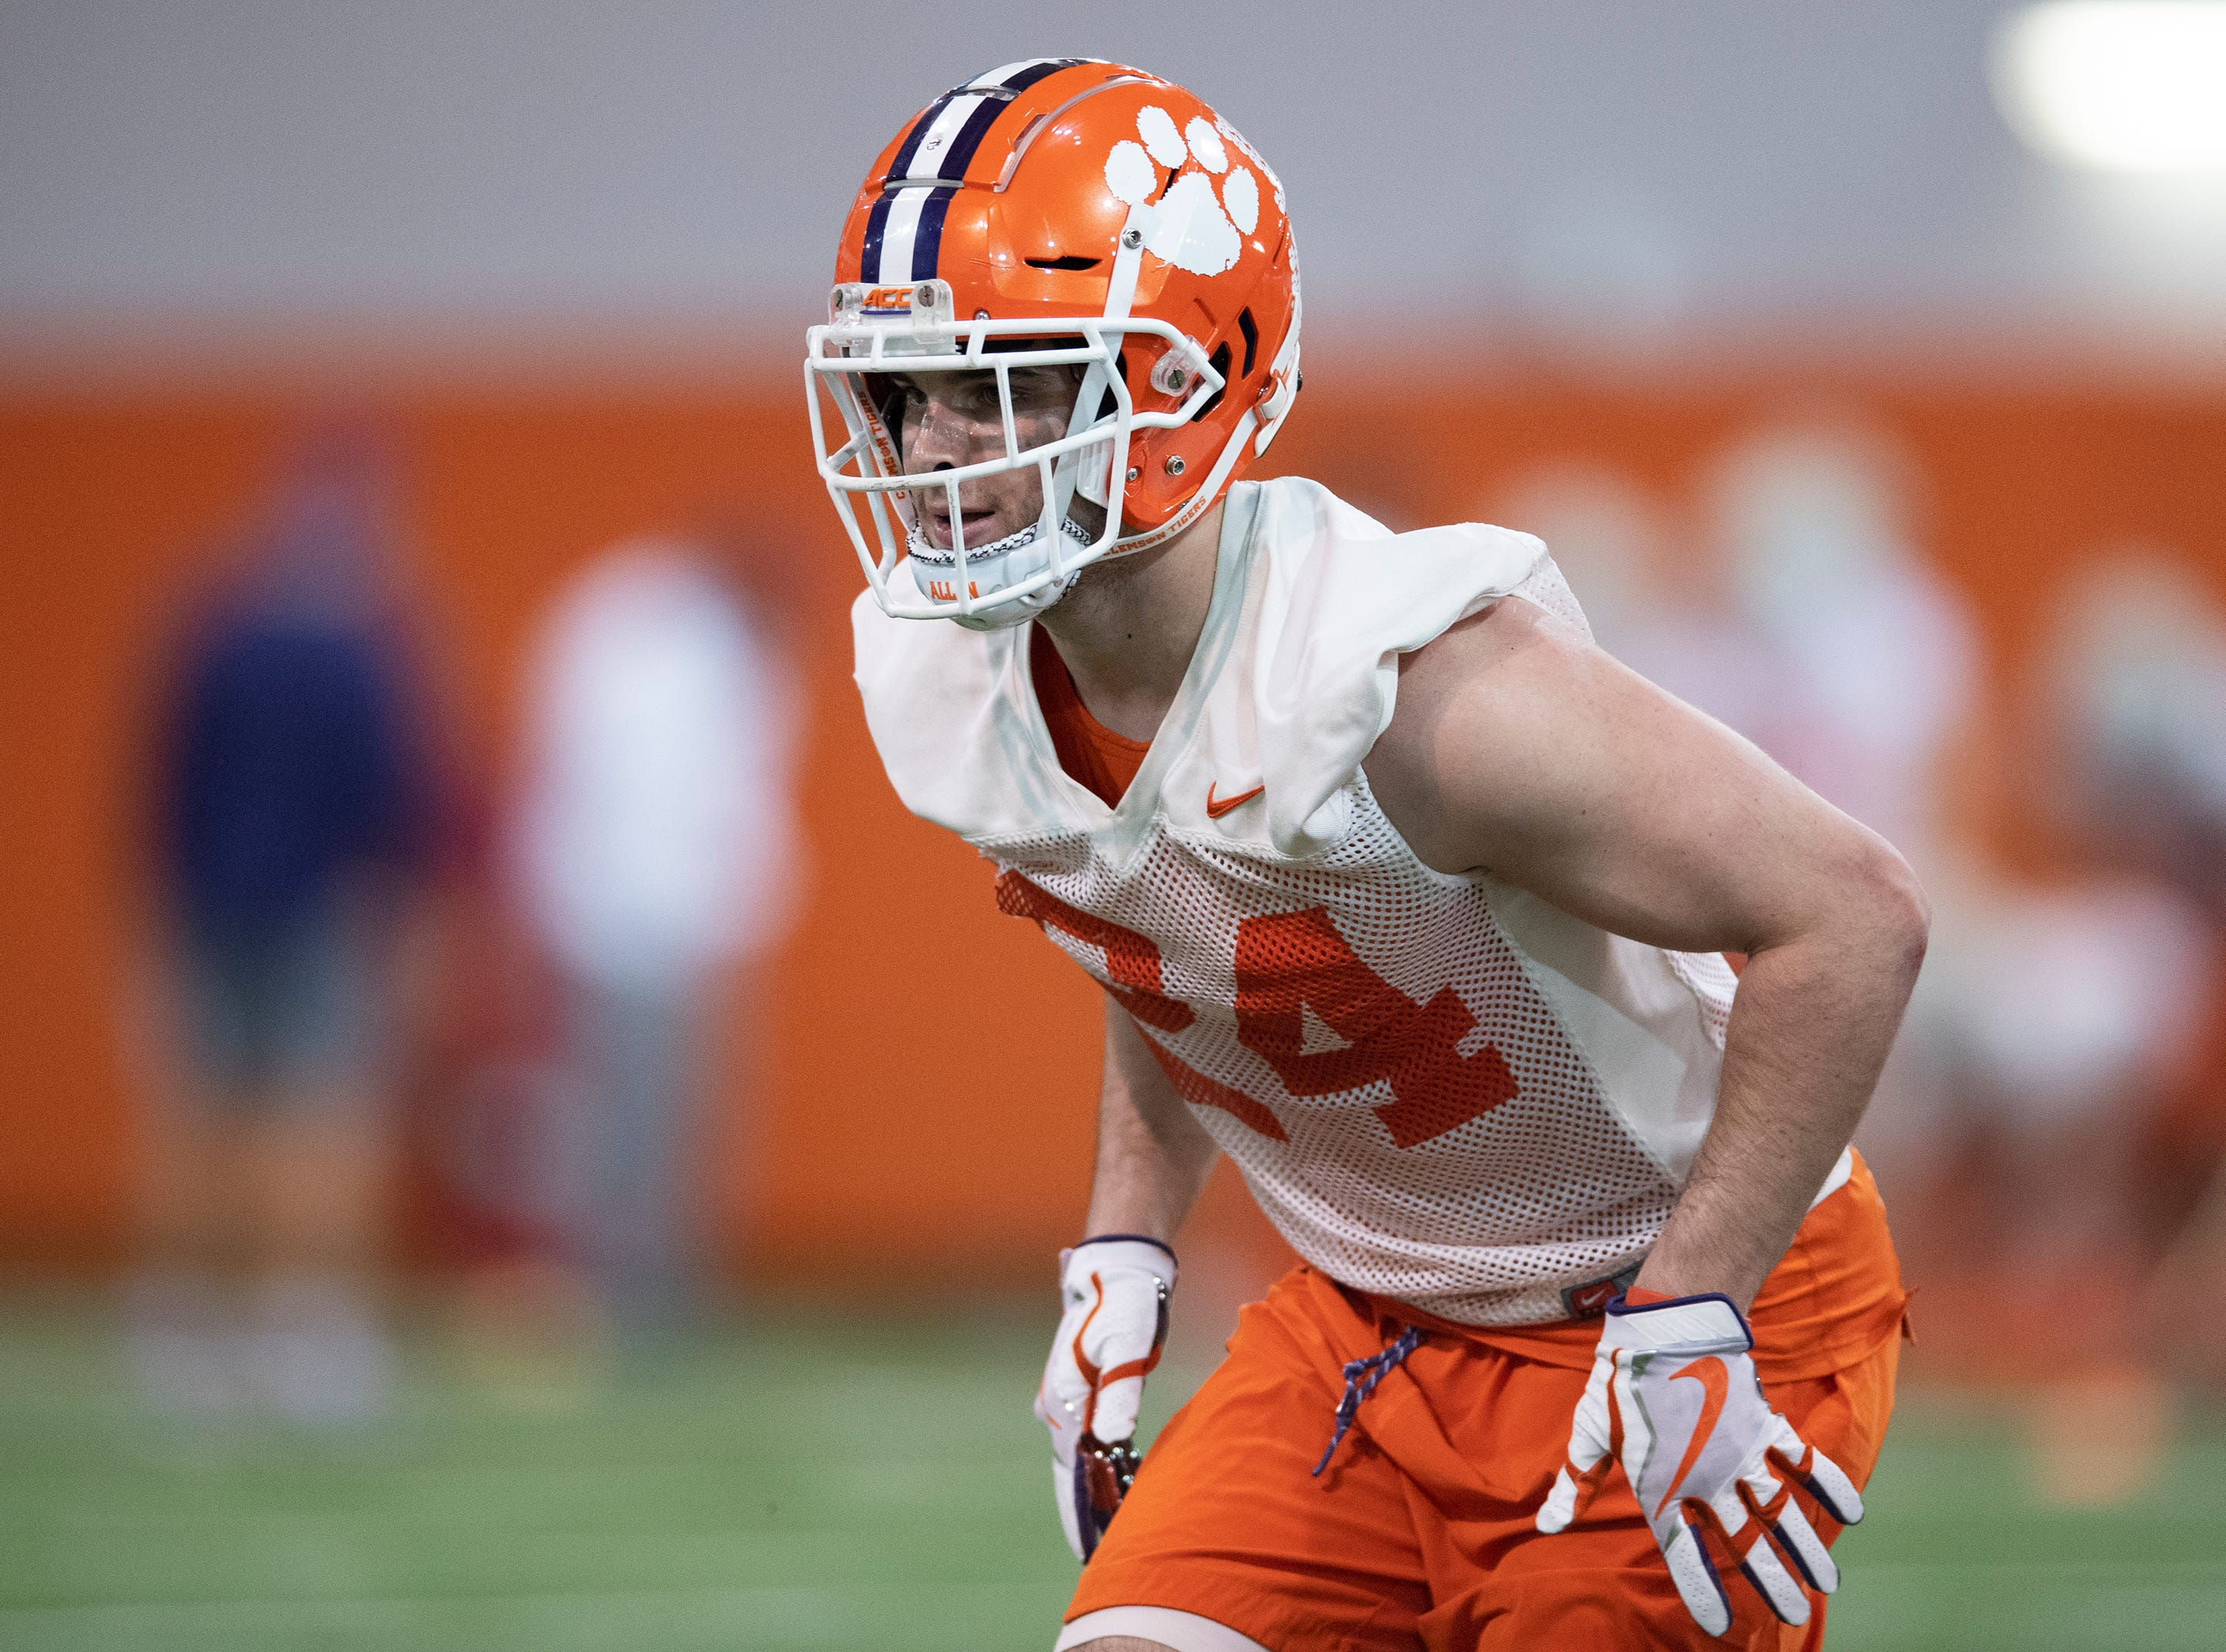 Clemson safety Nolan Turner (24) practices at the Poe Indoor Football Facility Friday, Mar. 1, 2019.